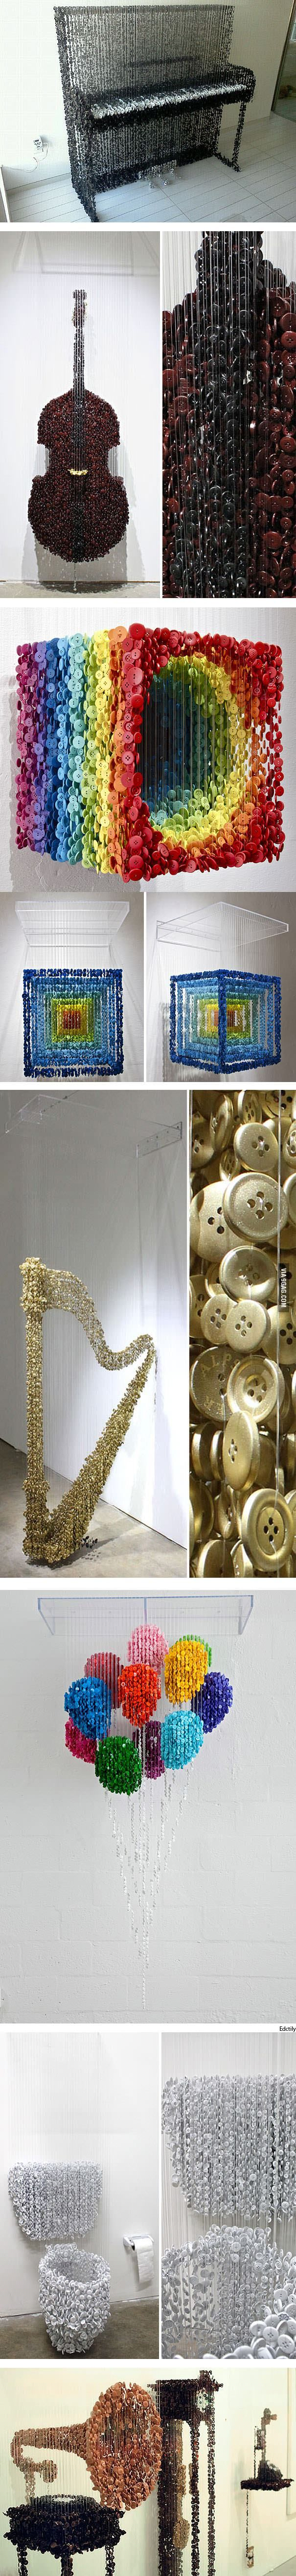 Amazing Sculptures Made From Buttons on Strings